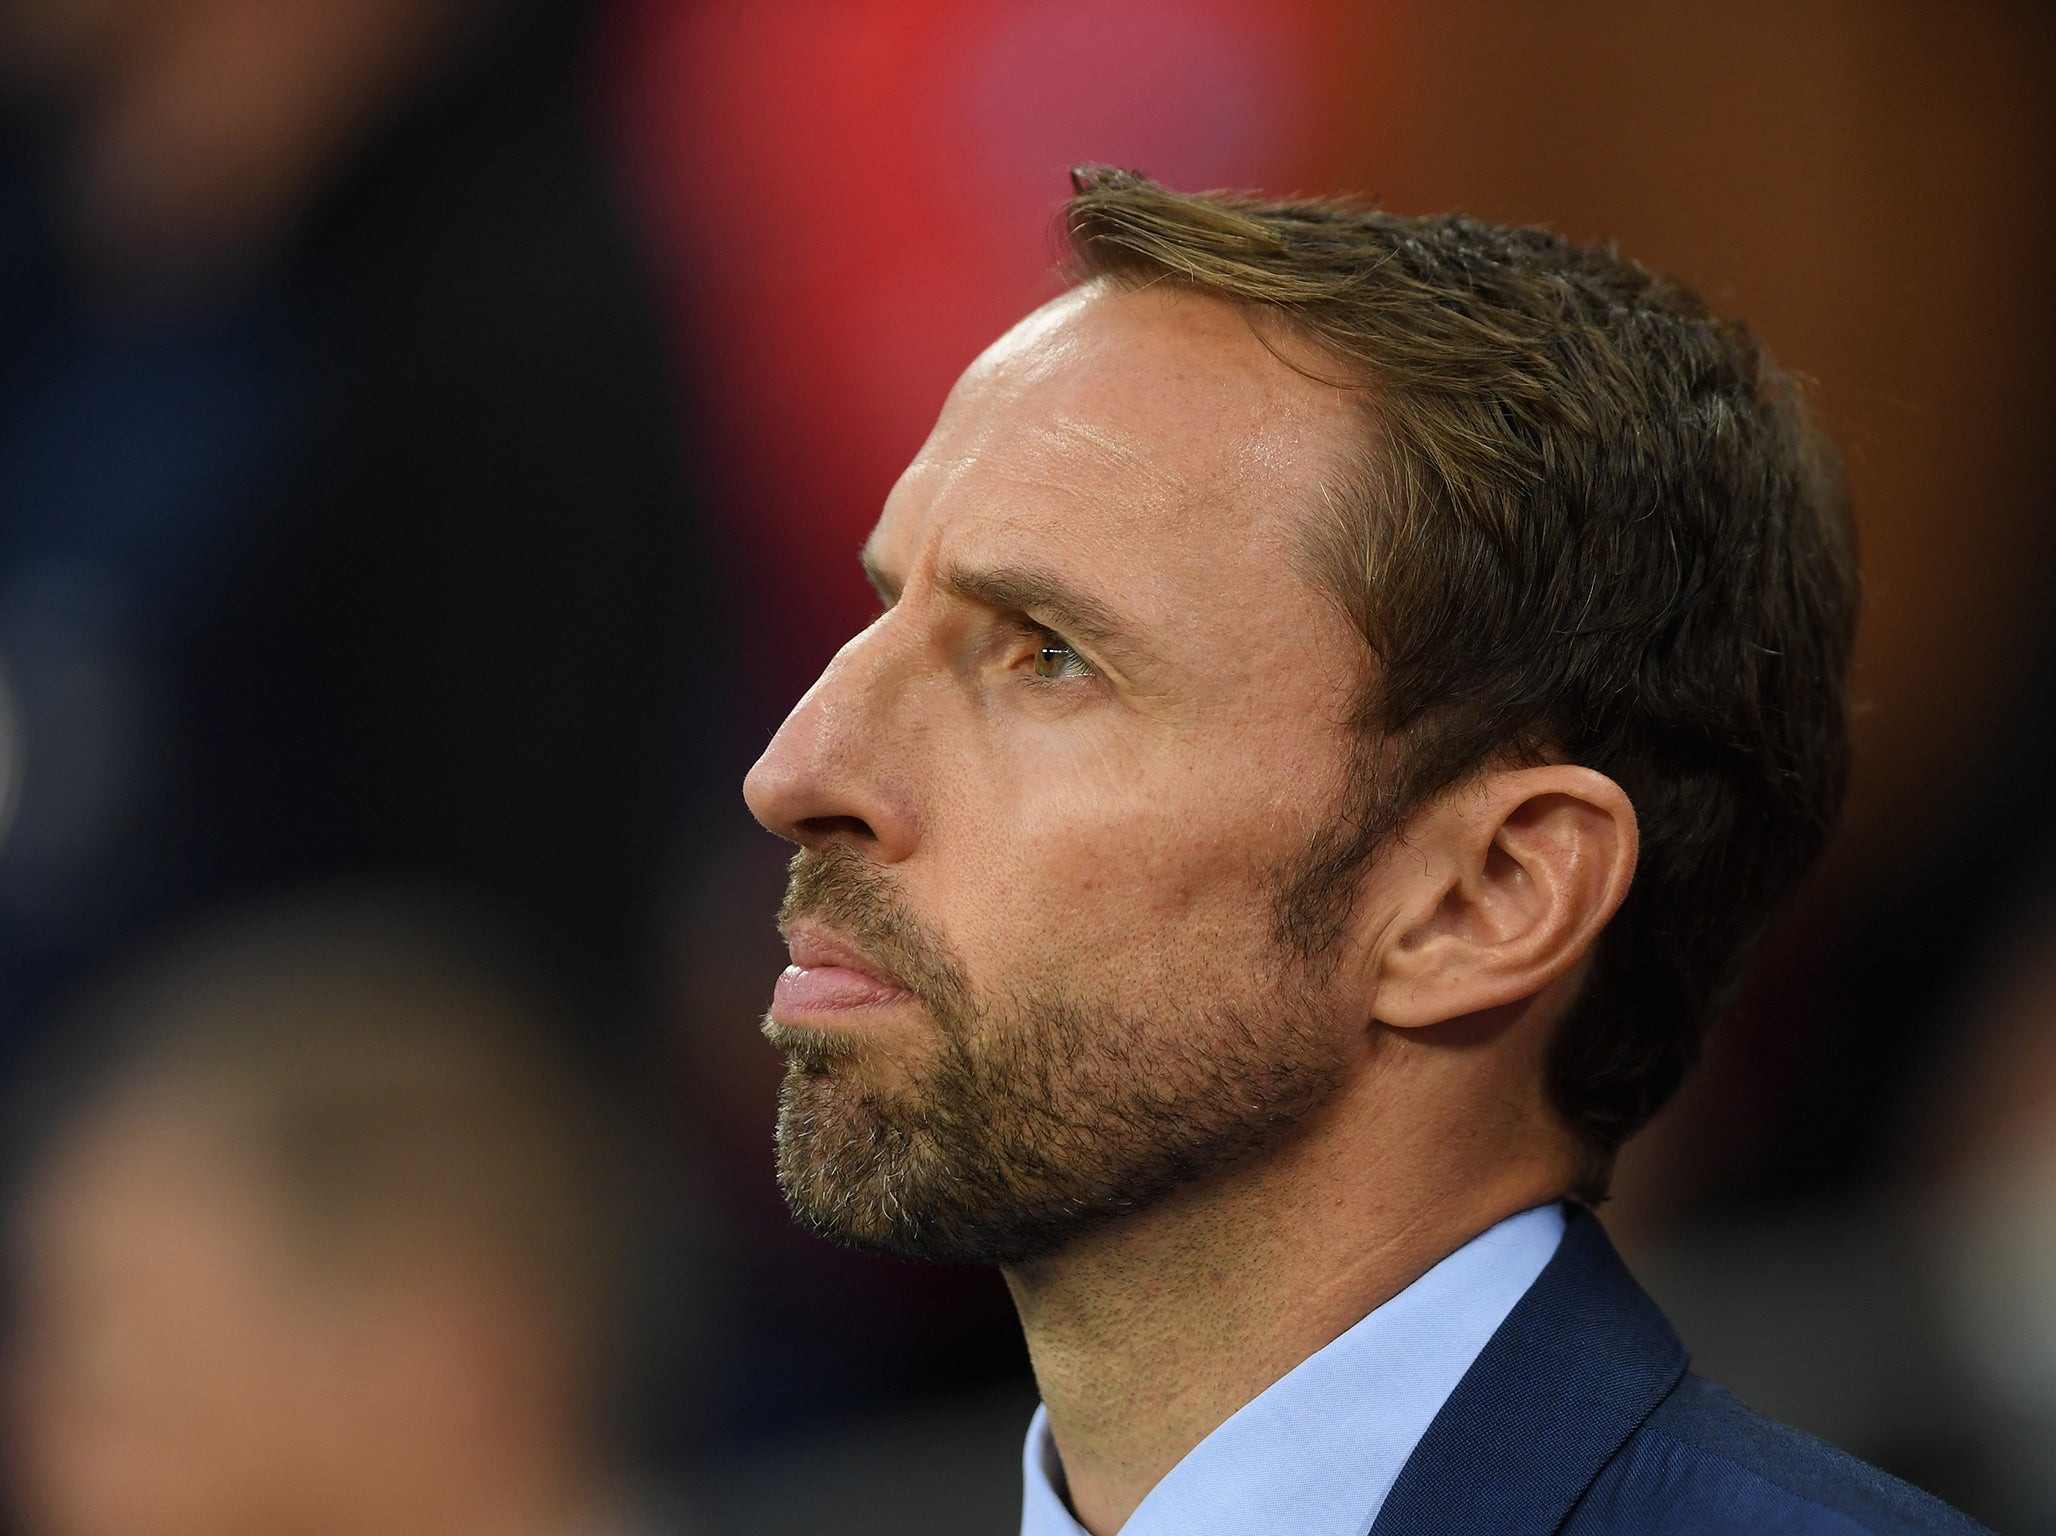 England won't improve unless they test themselves against very best, insists Gareth Southgate